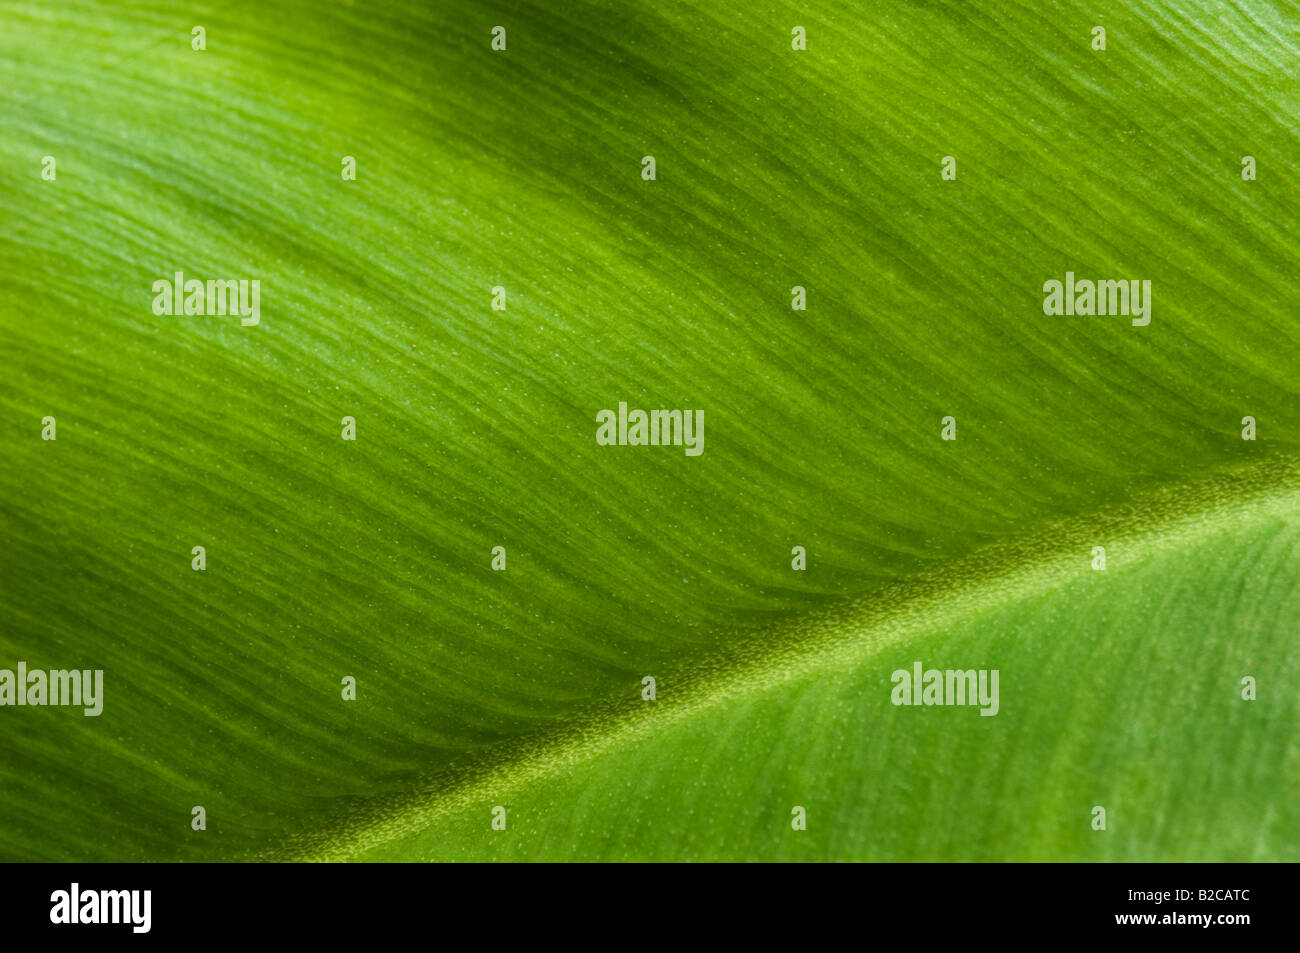 chlorophyll green plant leaf structures pattern nature symbol environment DETAIL new fresh - Stock Image